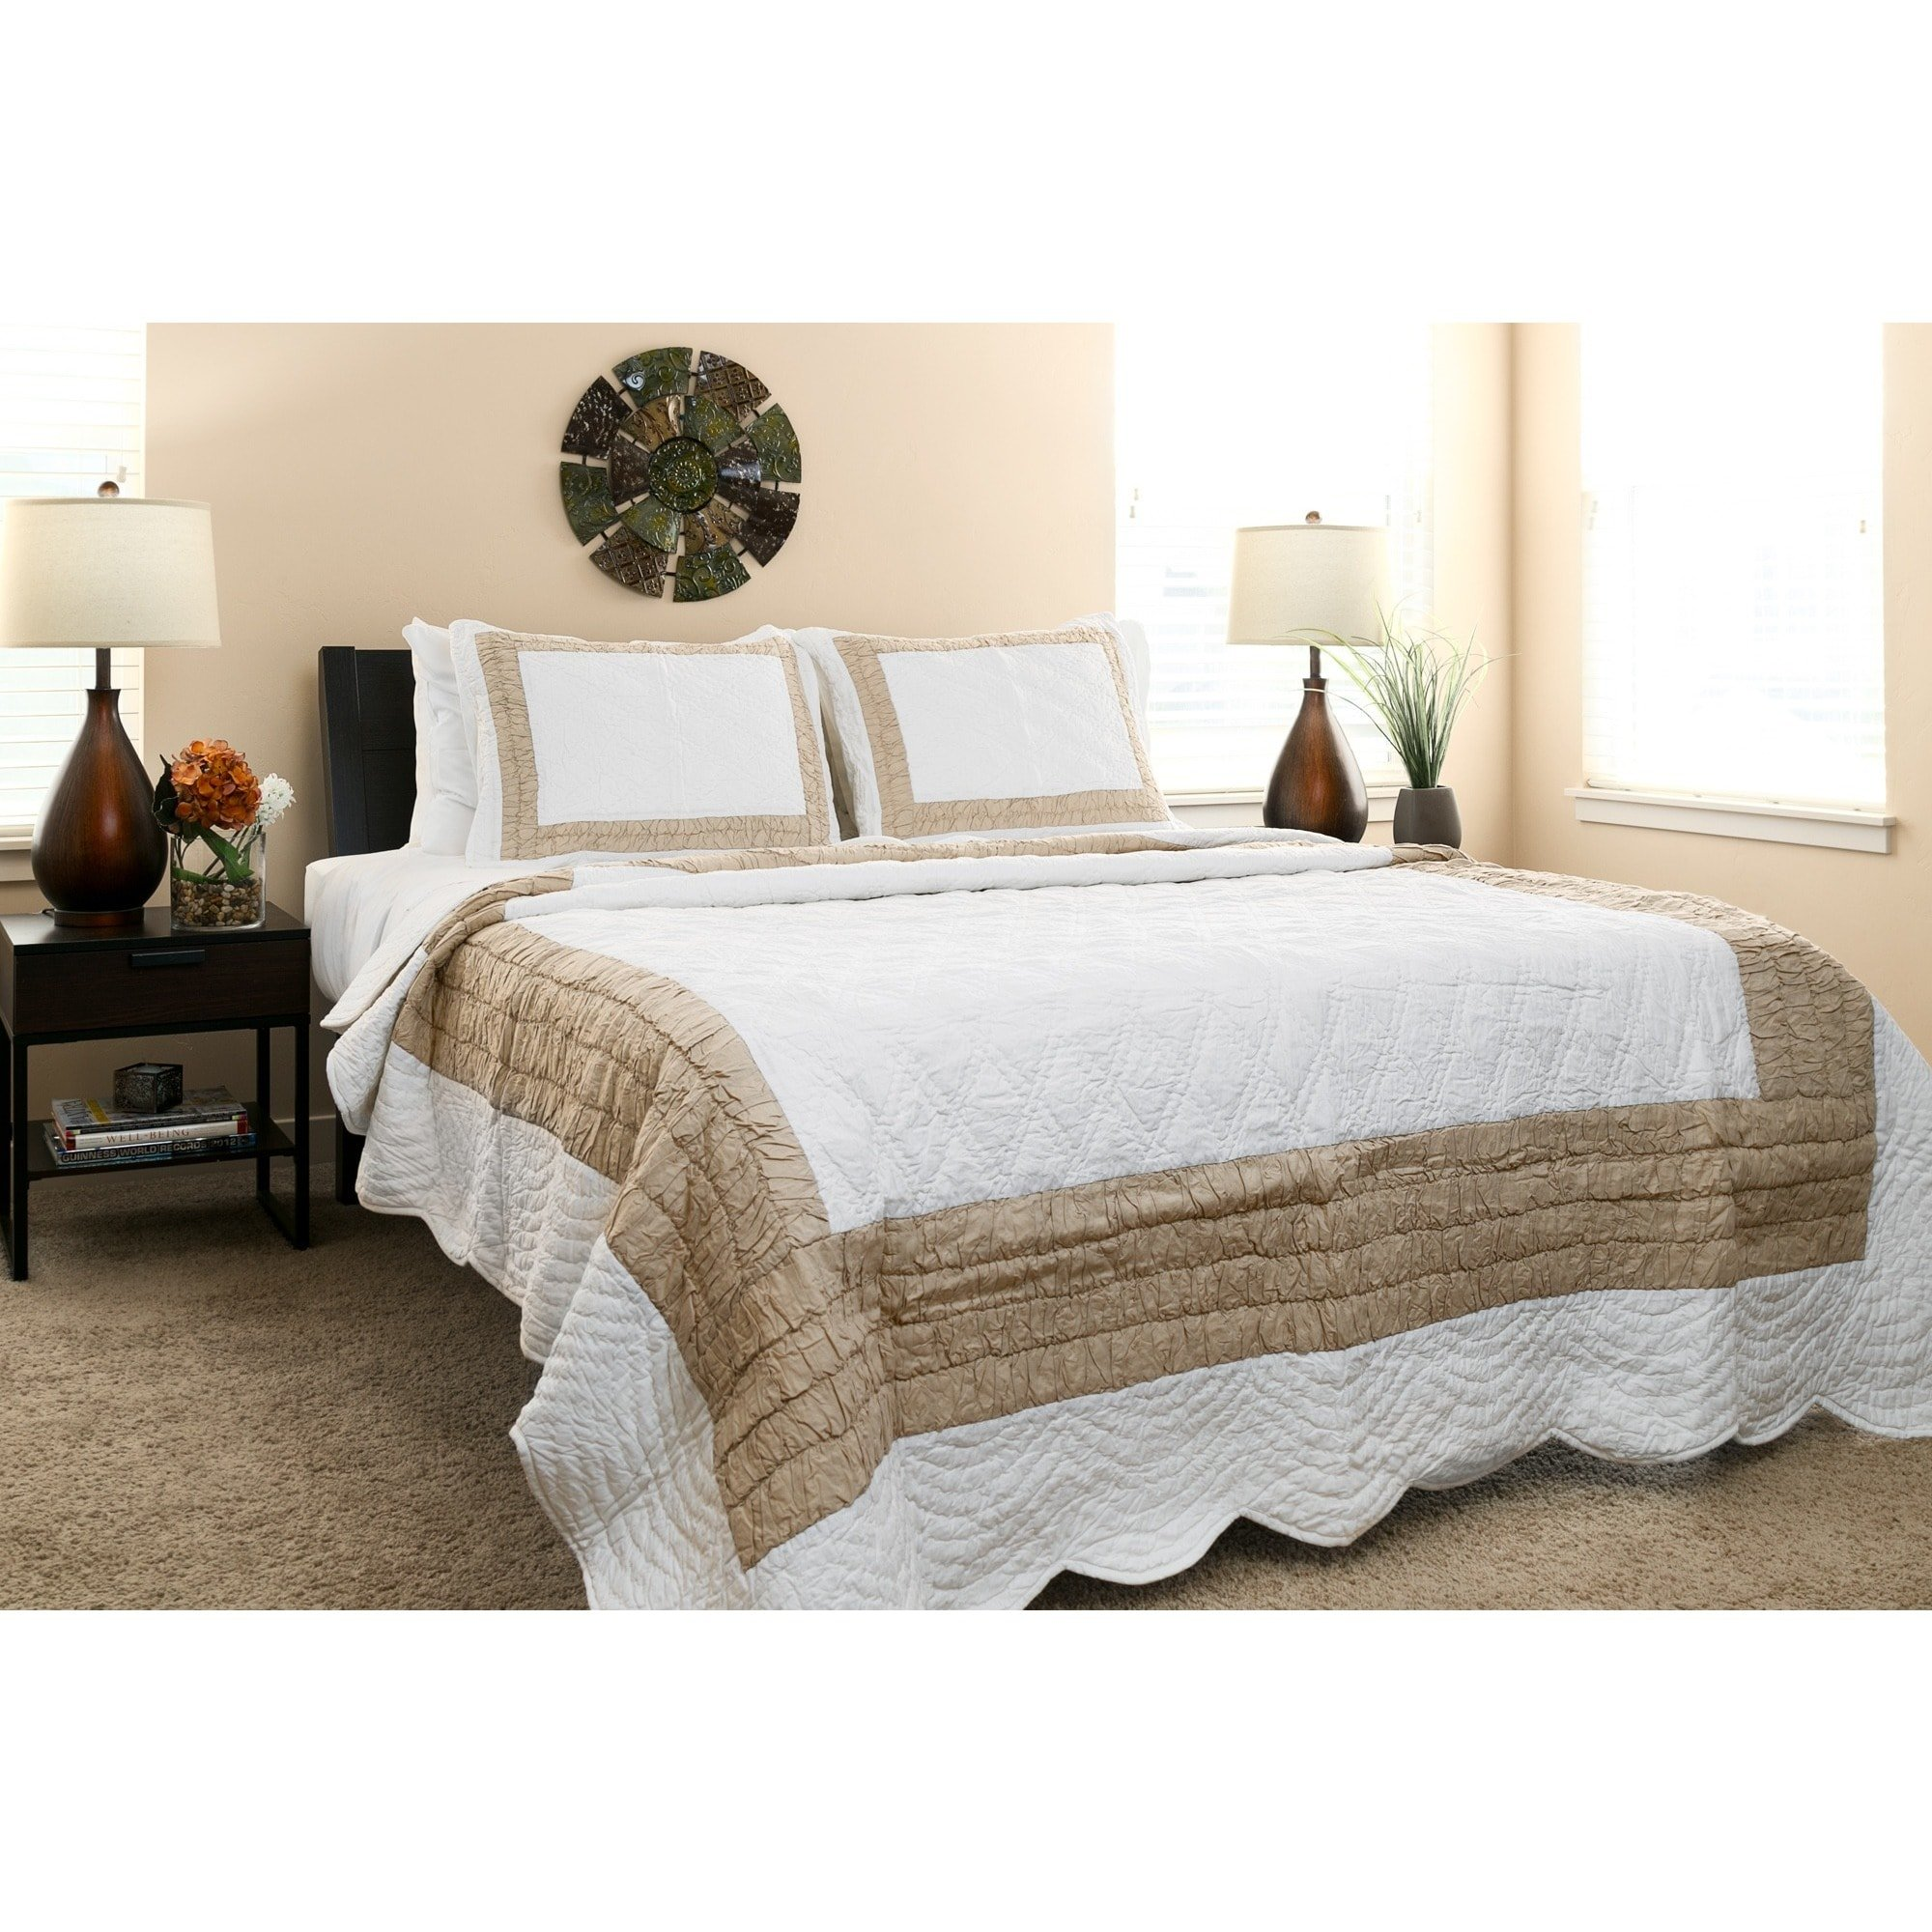 Arsons Home Furnishings Handmade Vibrant 100-percent Cotton Quilt Set (India) by Arsons Home Furnishings (Image #2)